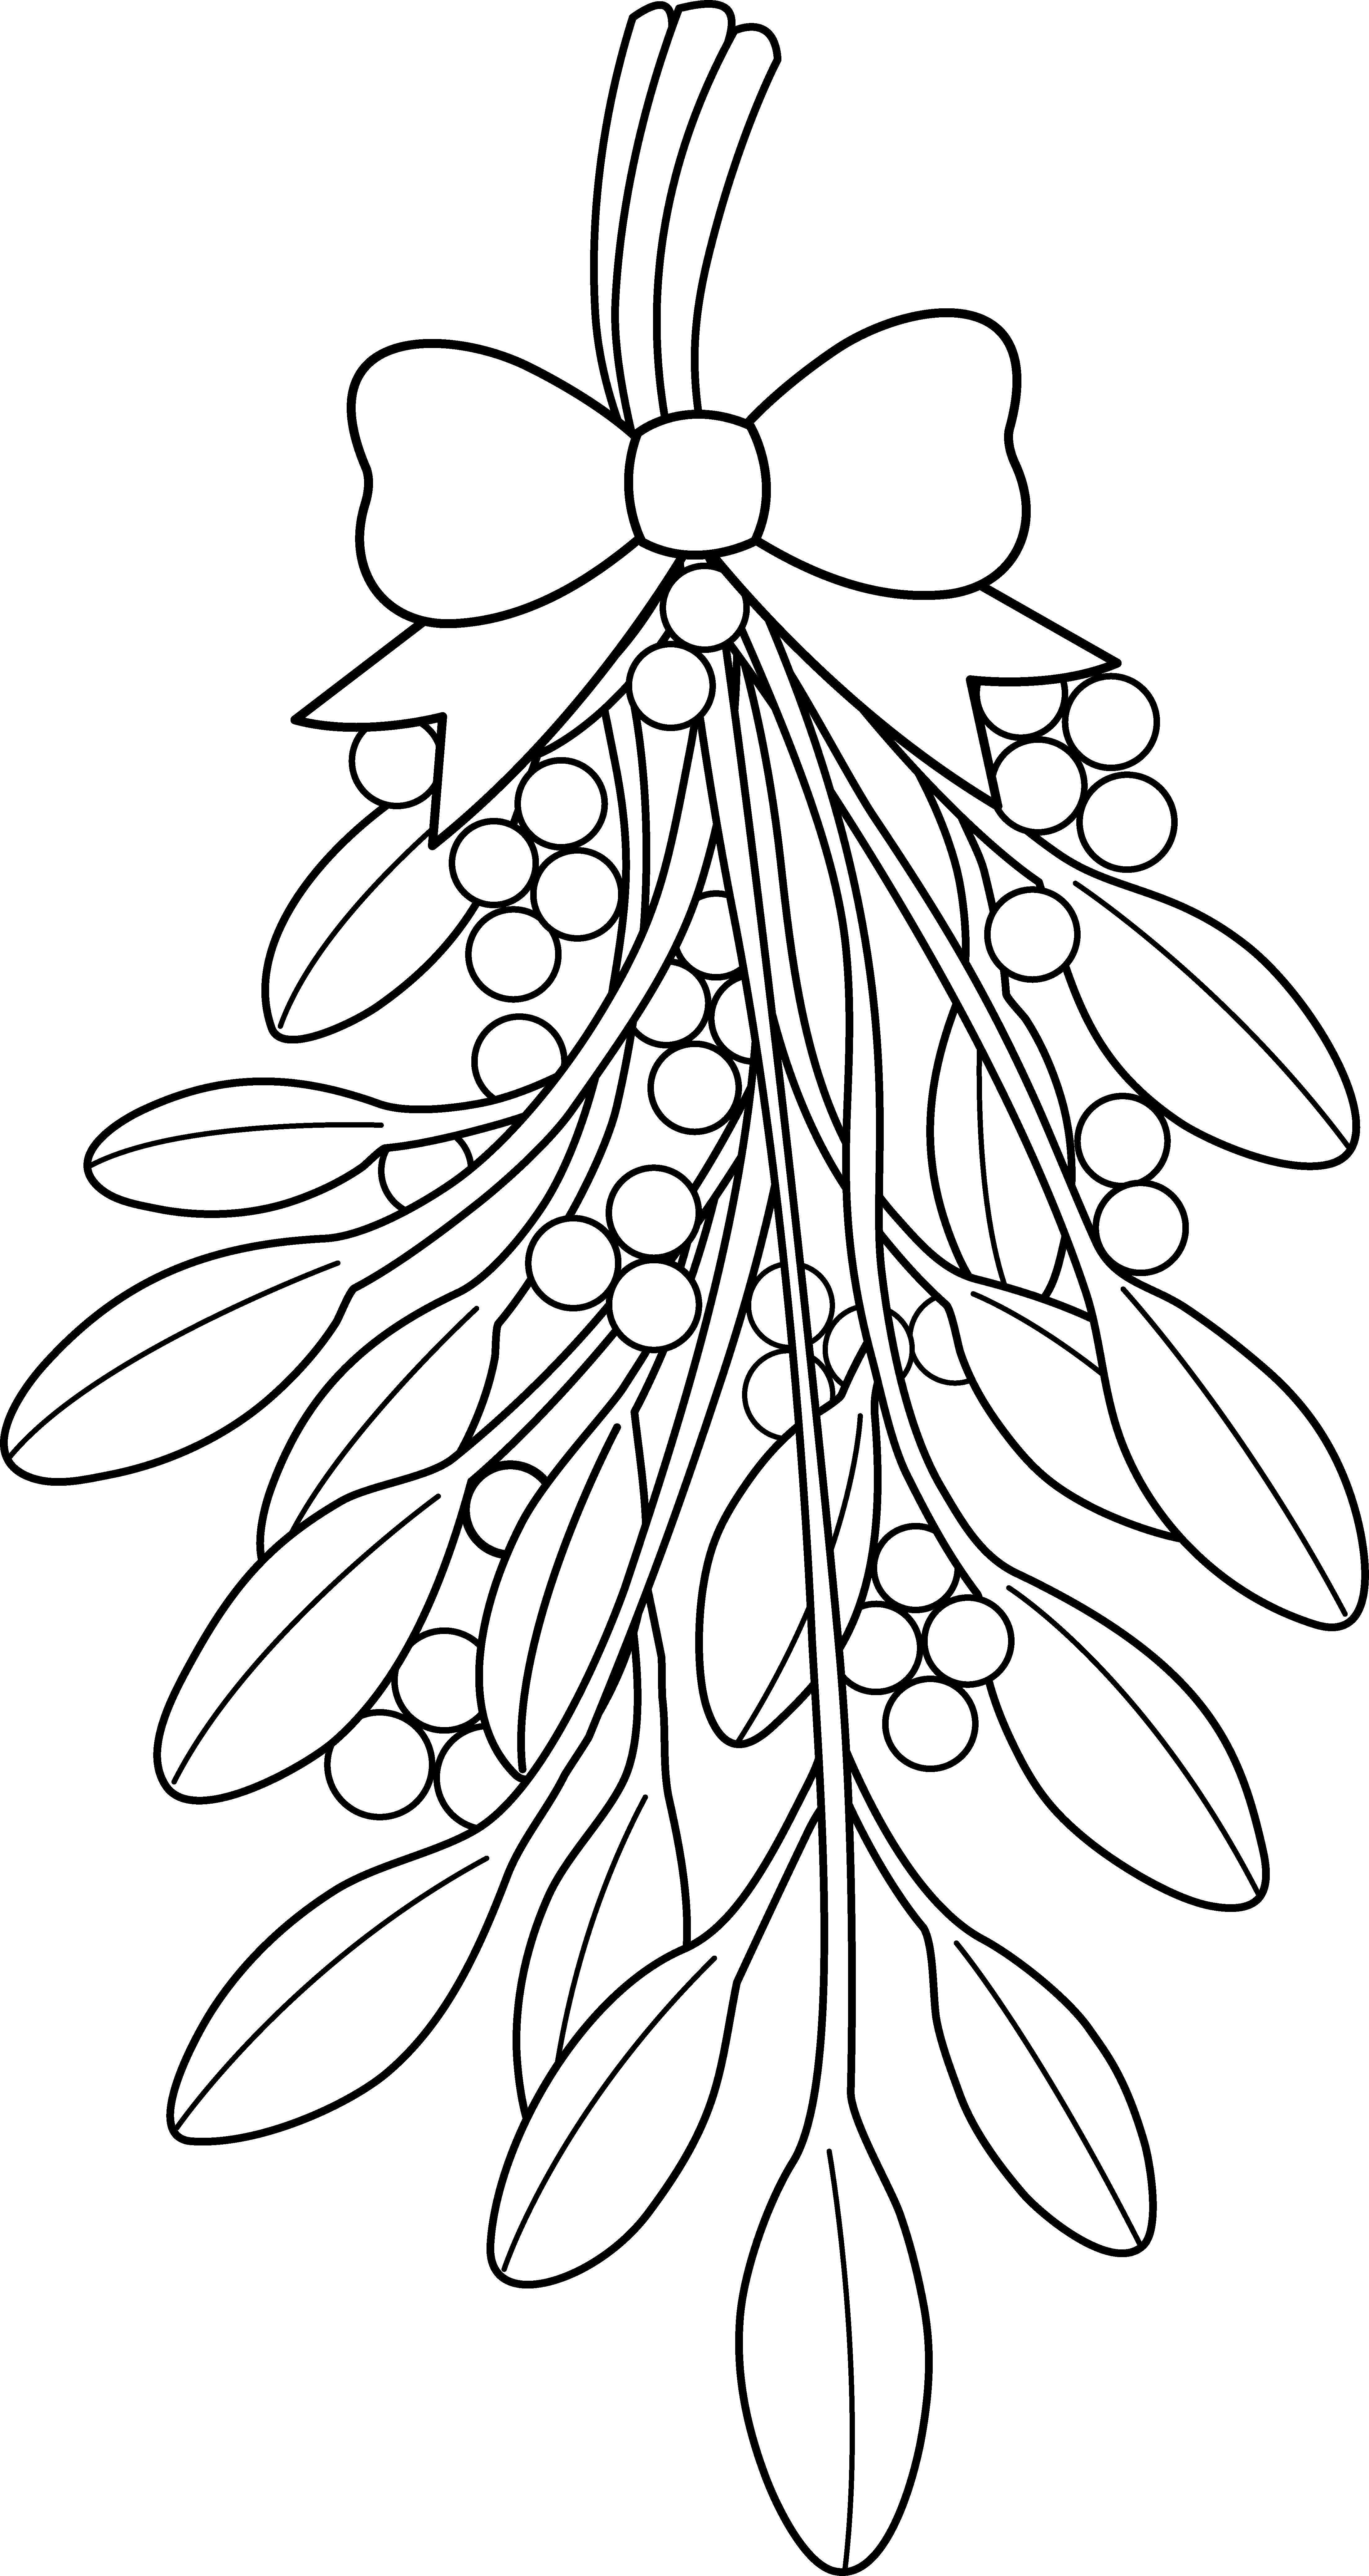 clip art free Poinsettia clipart black and white. Christmas coloring pages mistletoe